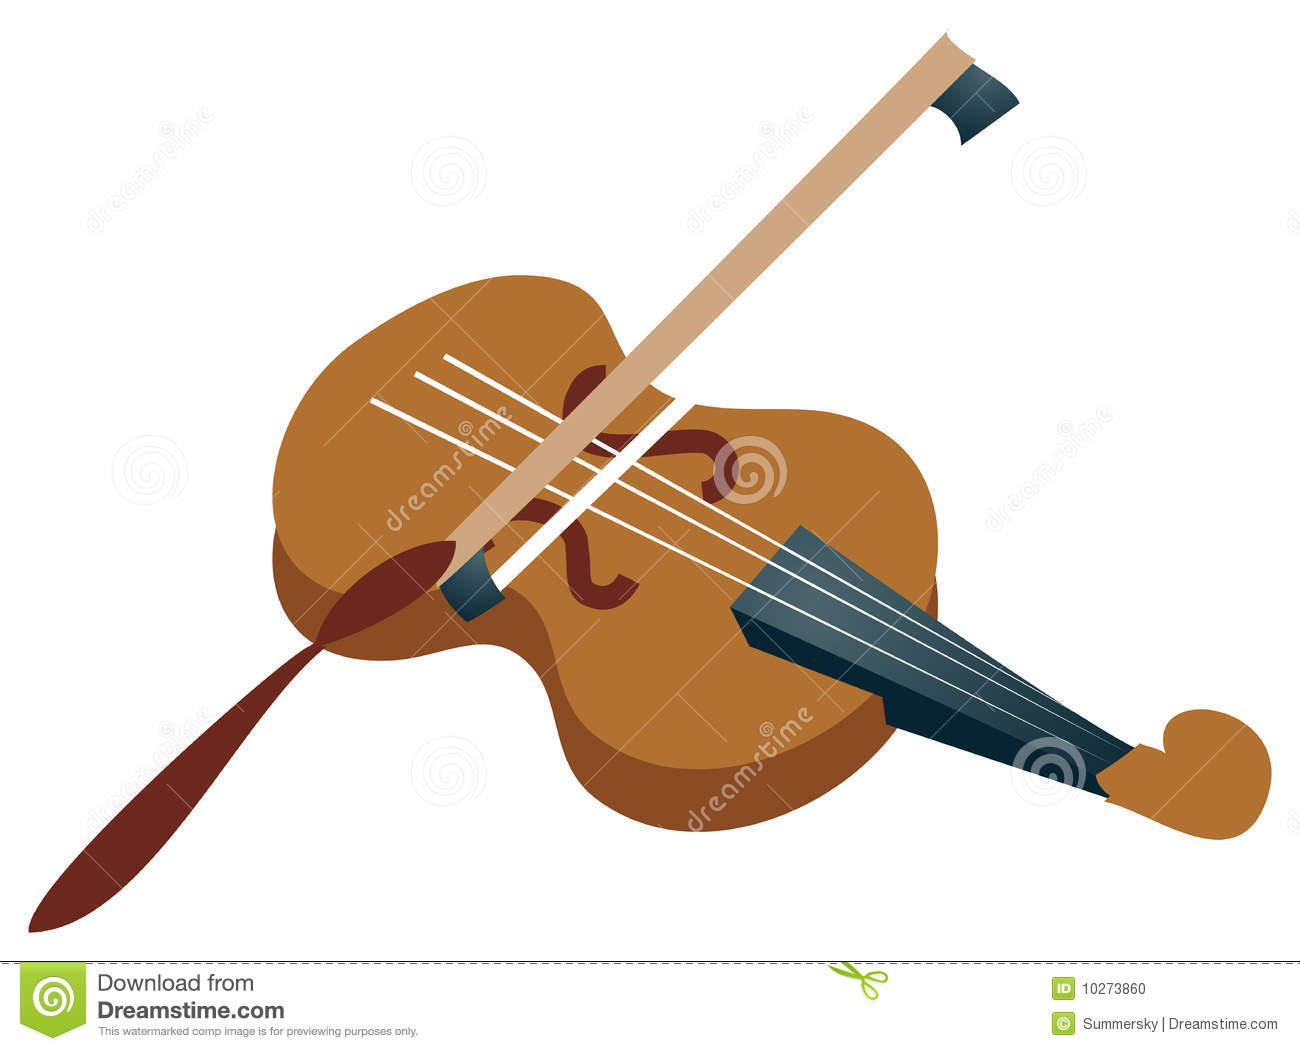 Cartoon Violin Images: Violin Stock Illustration. Image Of Opera, Instrument